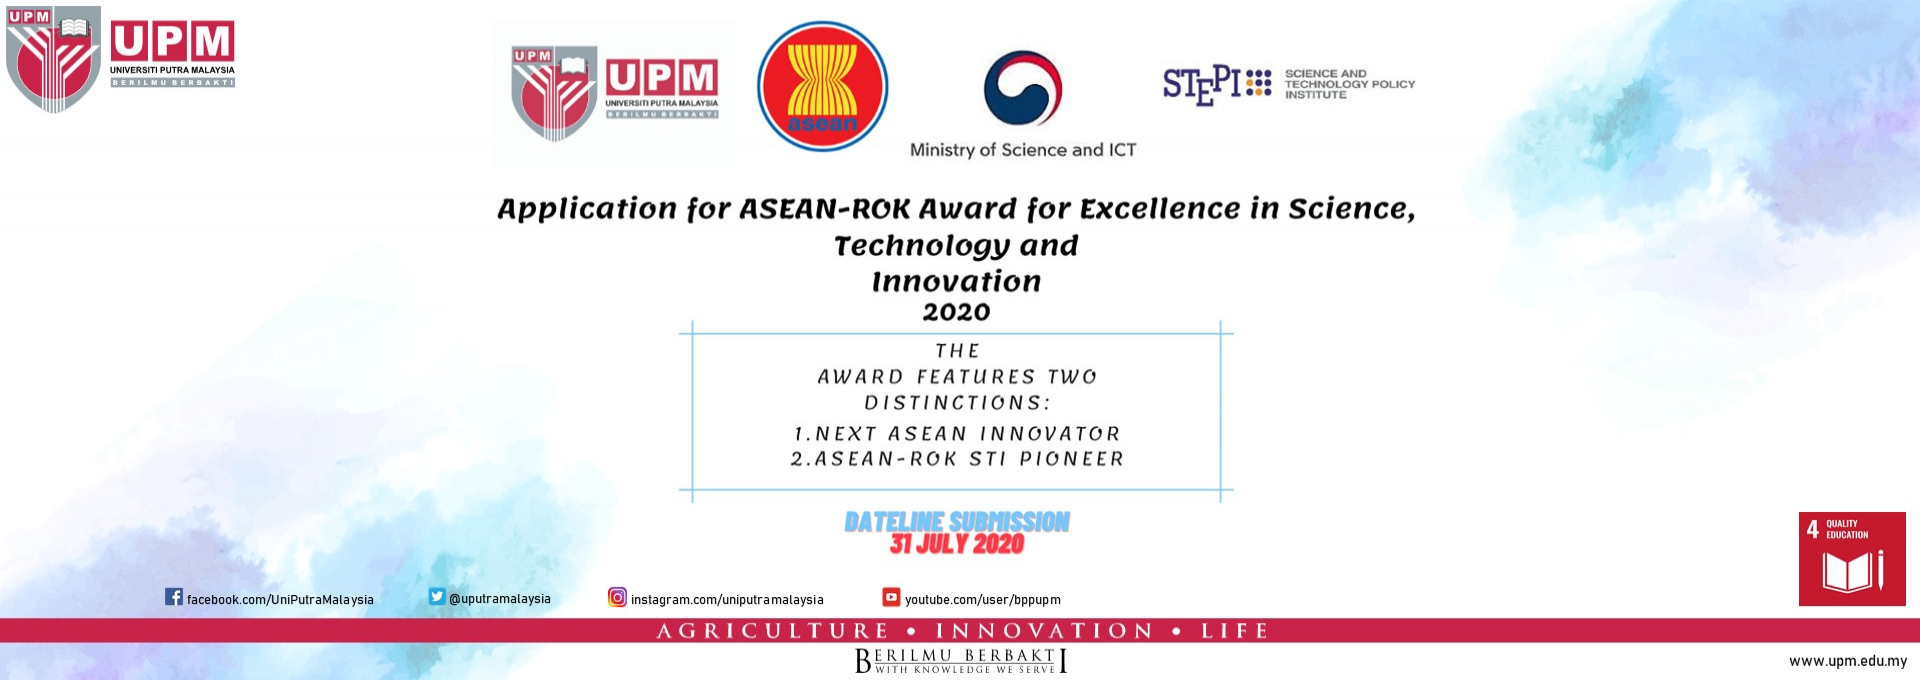 Call for Application for ASEAN-ROK Award for Excellence in Science, Technology and Innovation 2020